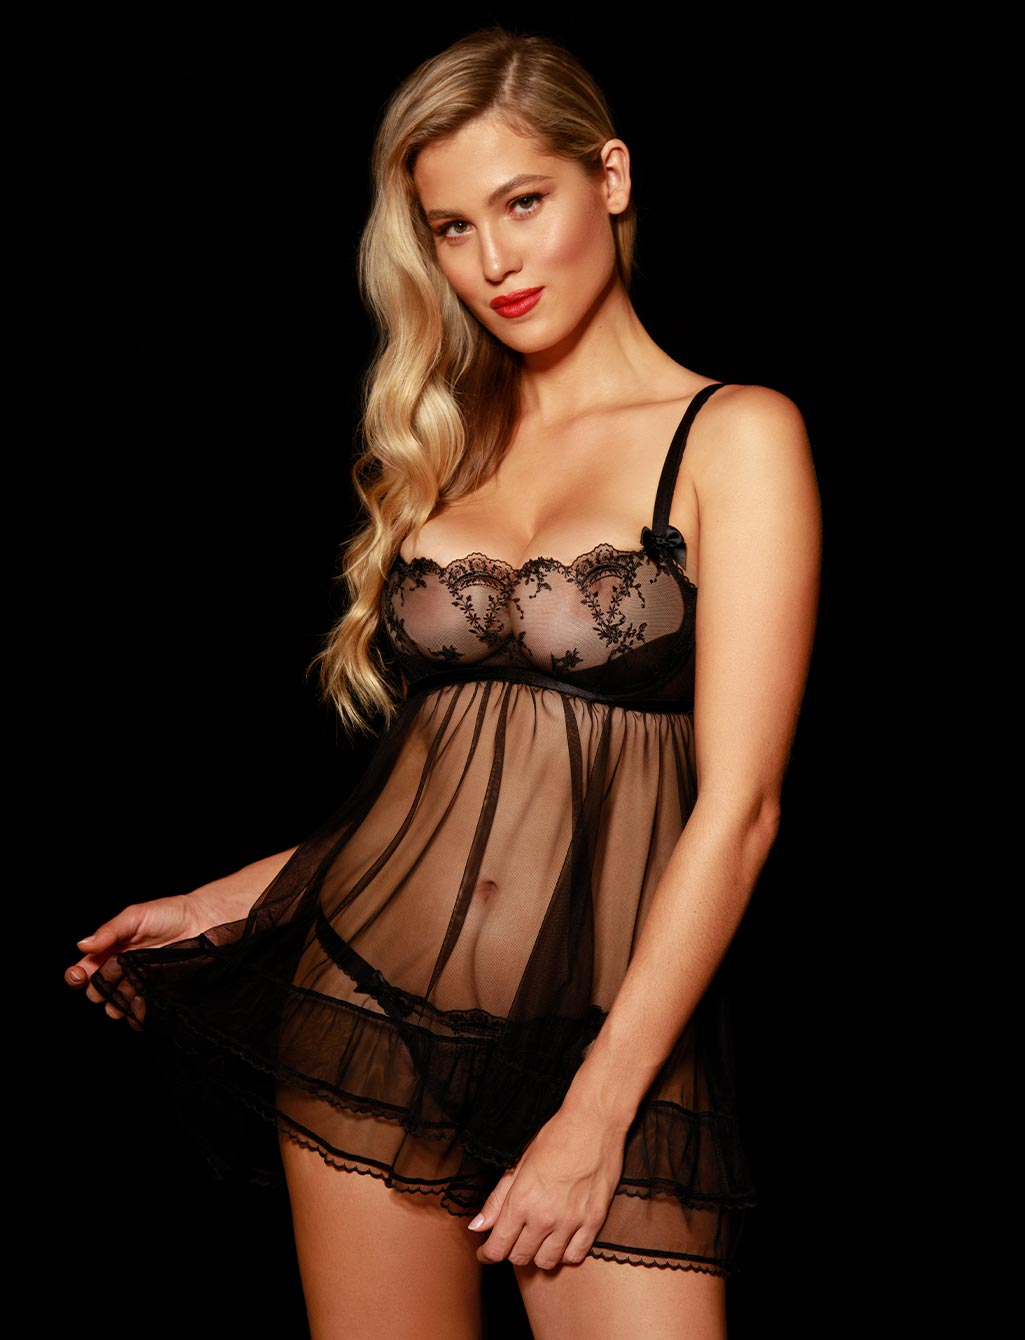 Layla Black Lace Babydoll Lingerie Set | Shop  Lingerie Honey Birdette